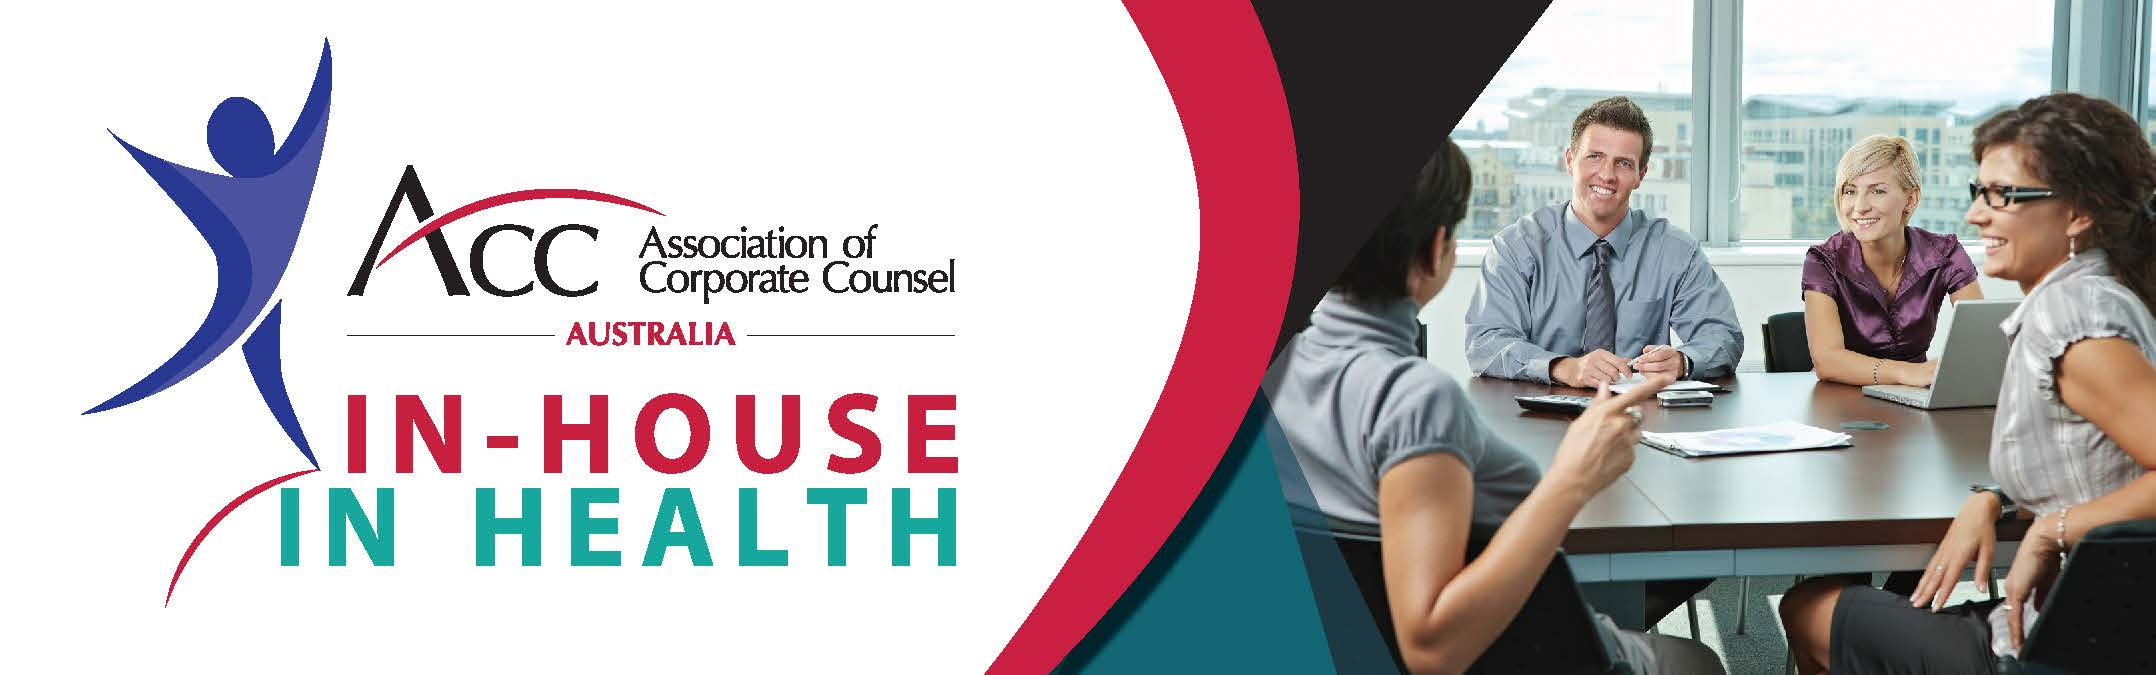 In-house In health logo